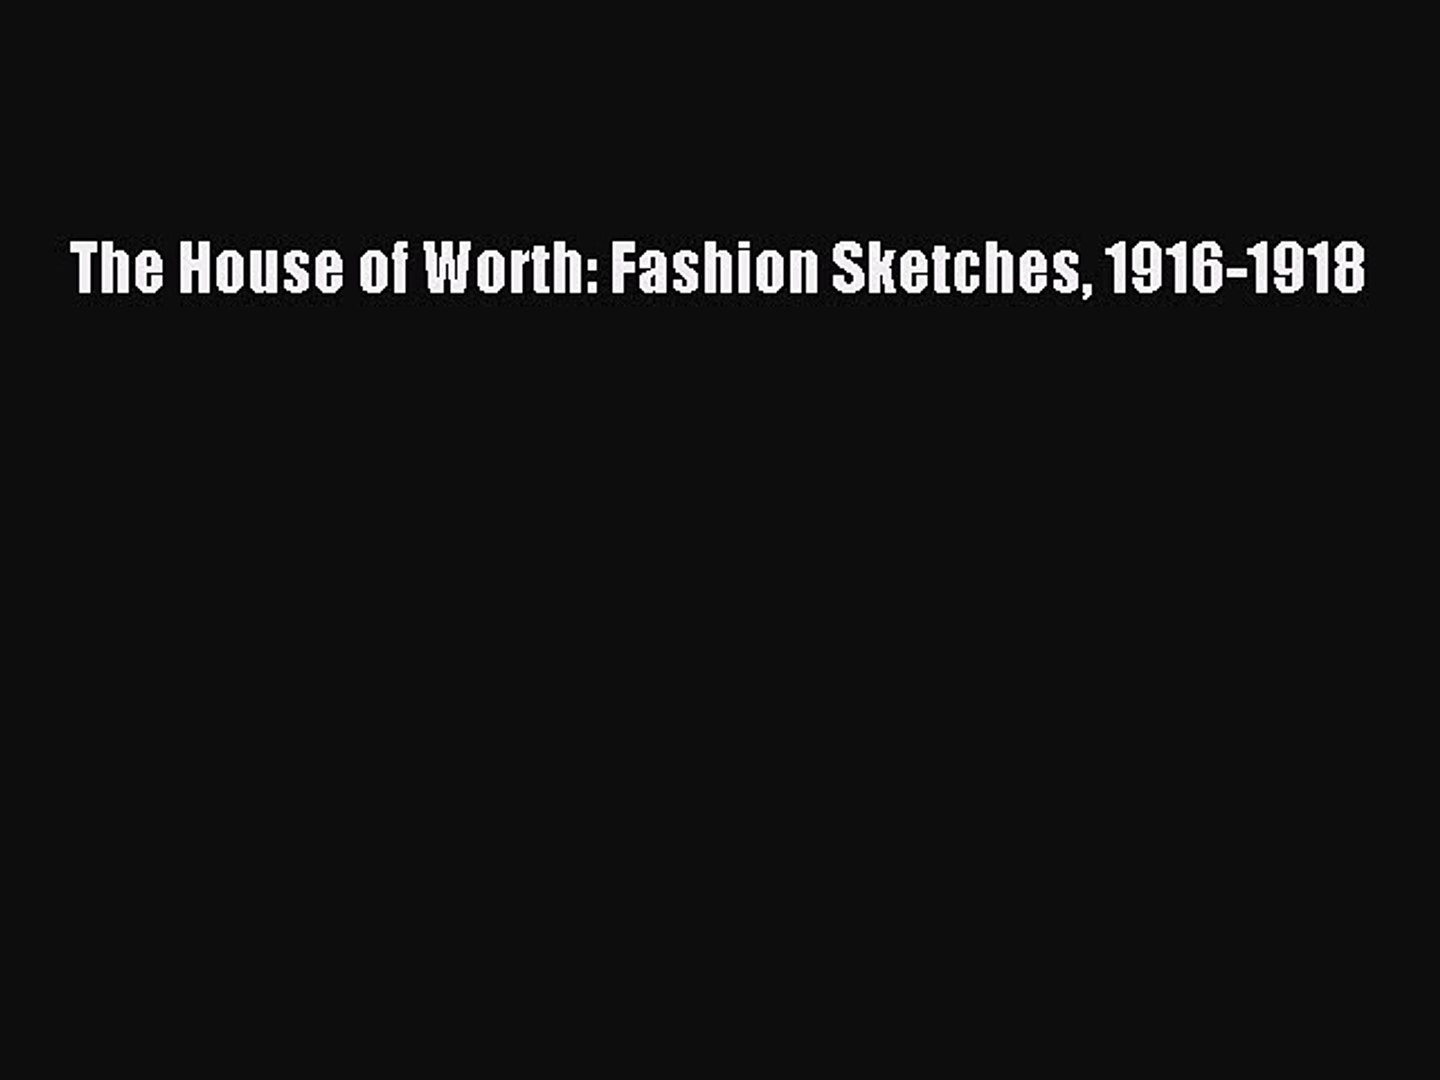 Download The House of Worth: Fashion Sketches 1916-1918 PDF Free